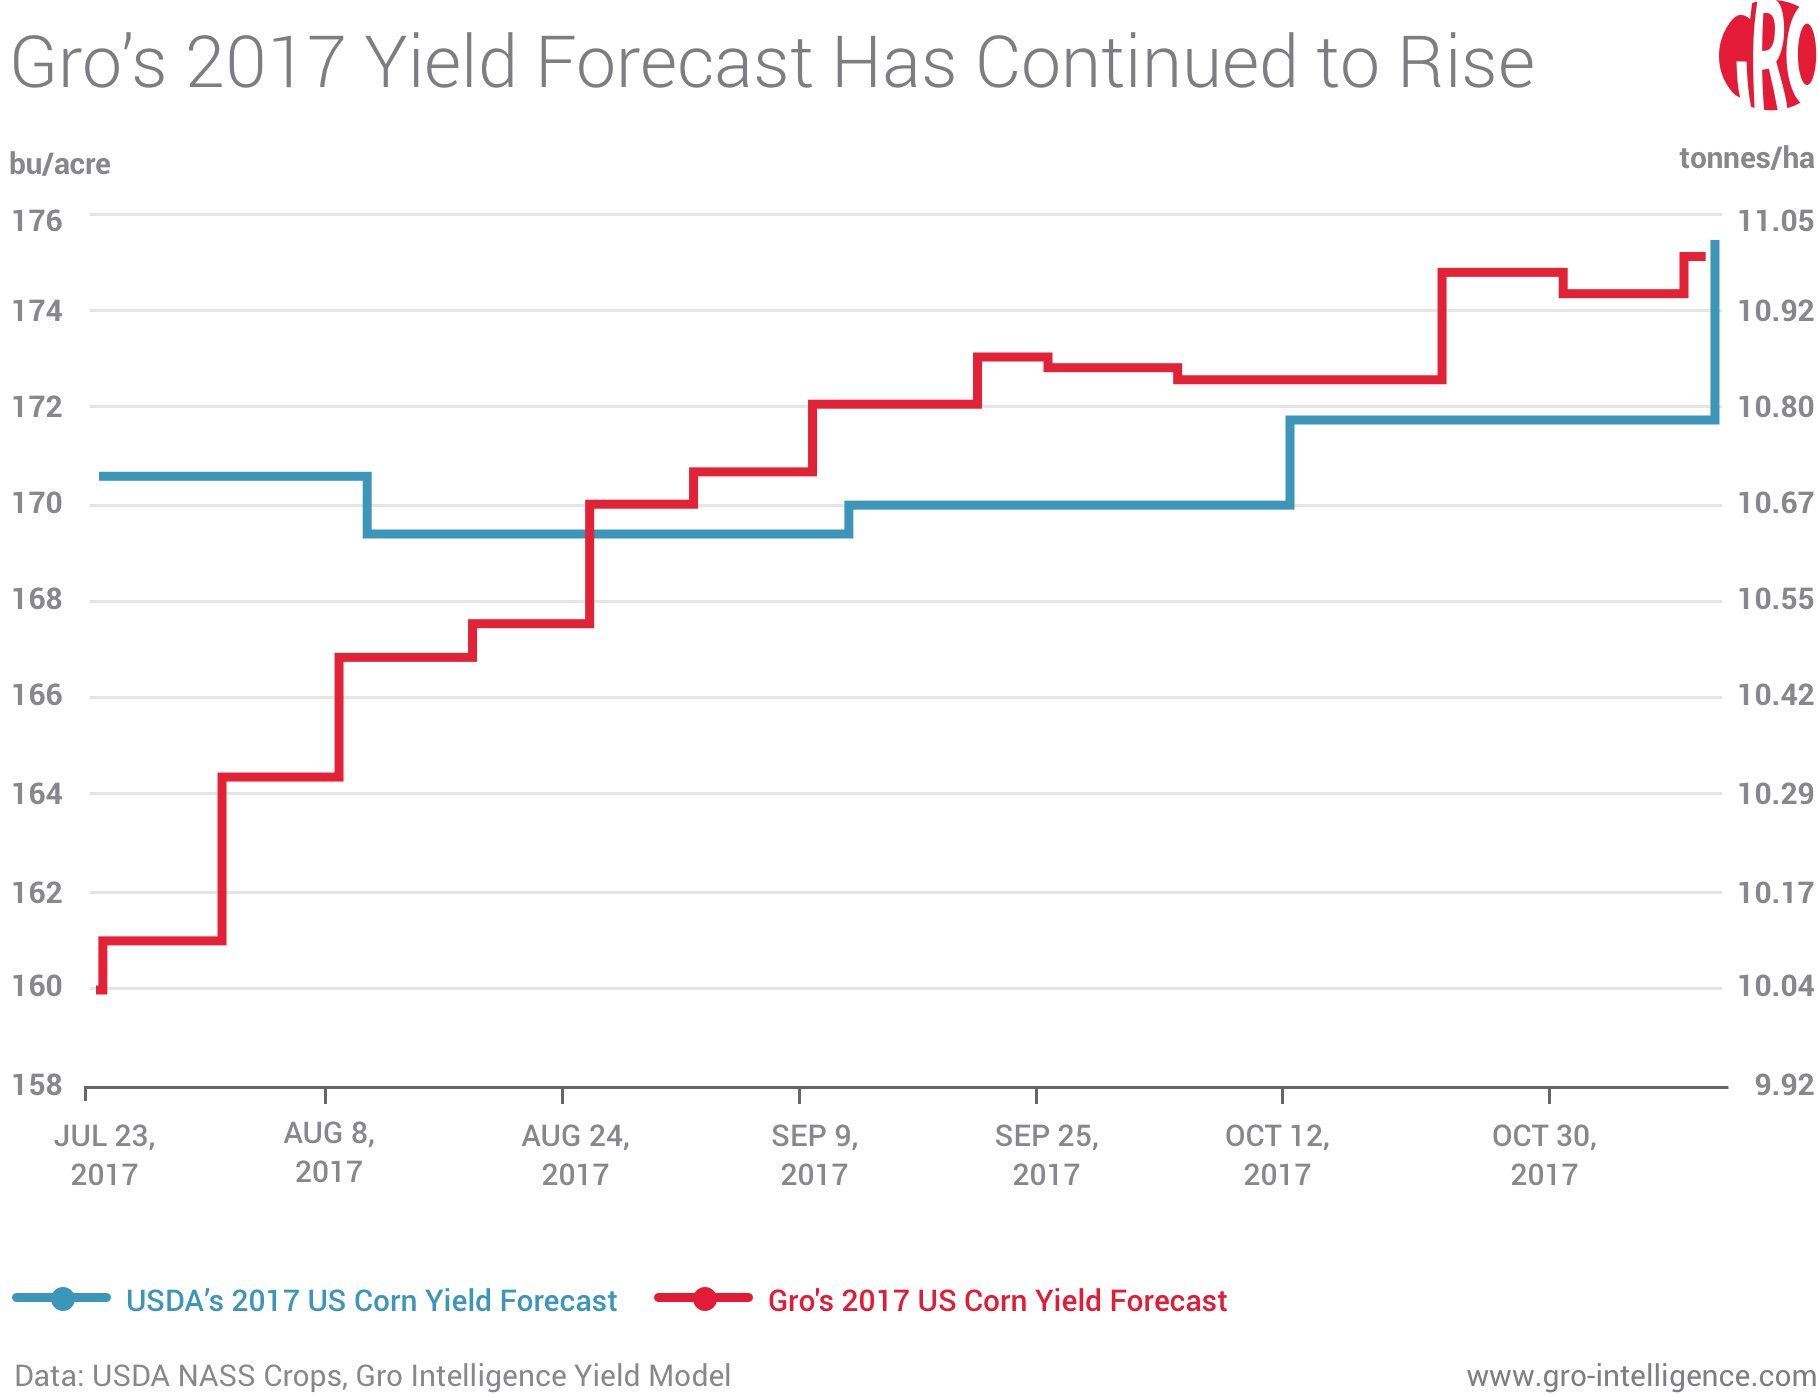 Gro's 2017 Yield Forecast Has Continued to Rise